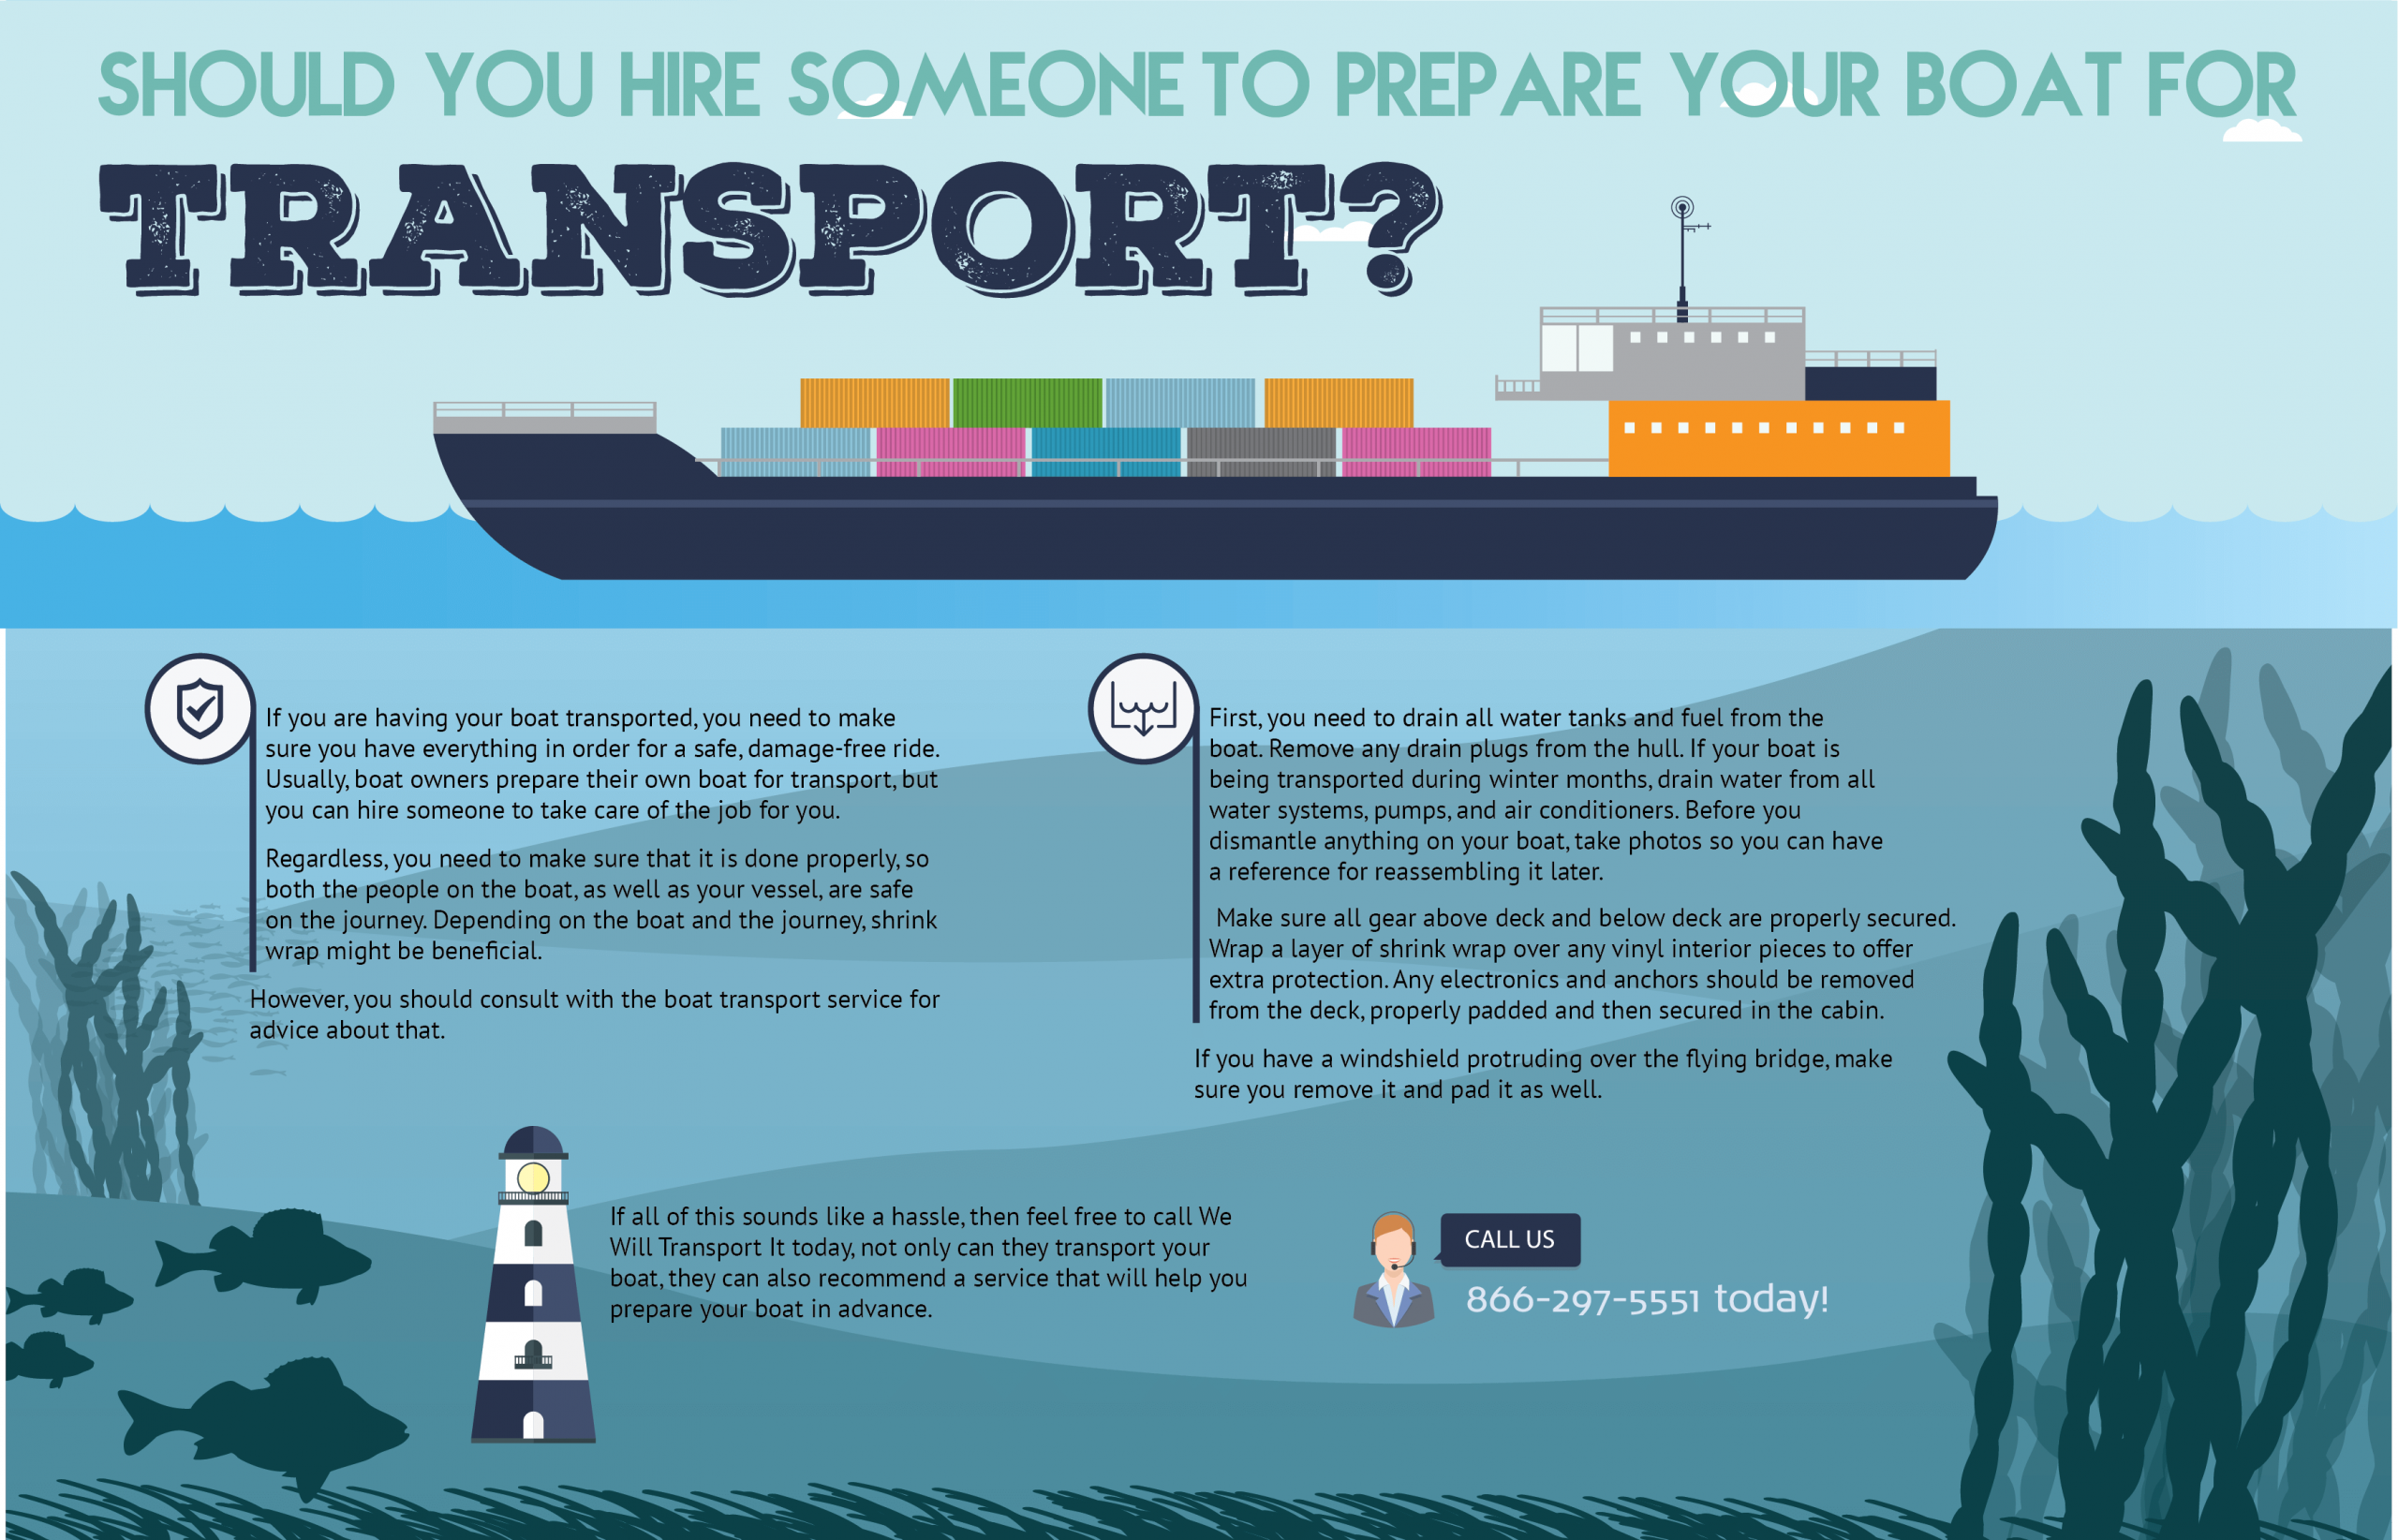 should you hire someone to prepare your boat for transport